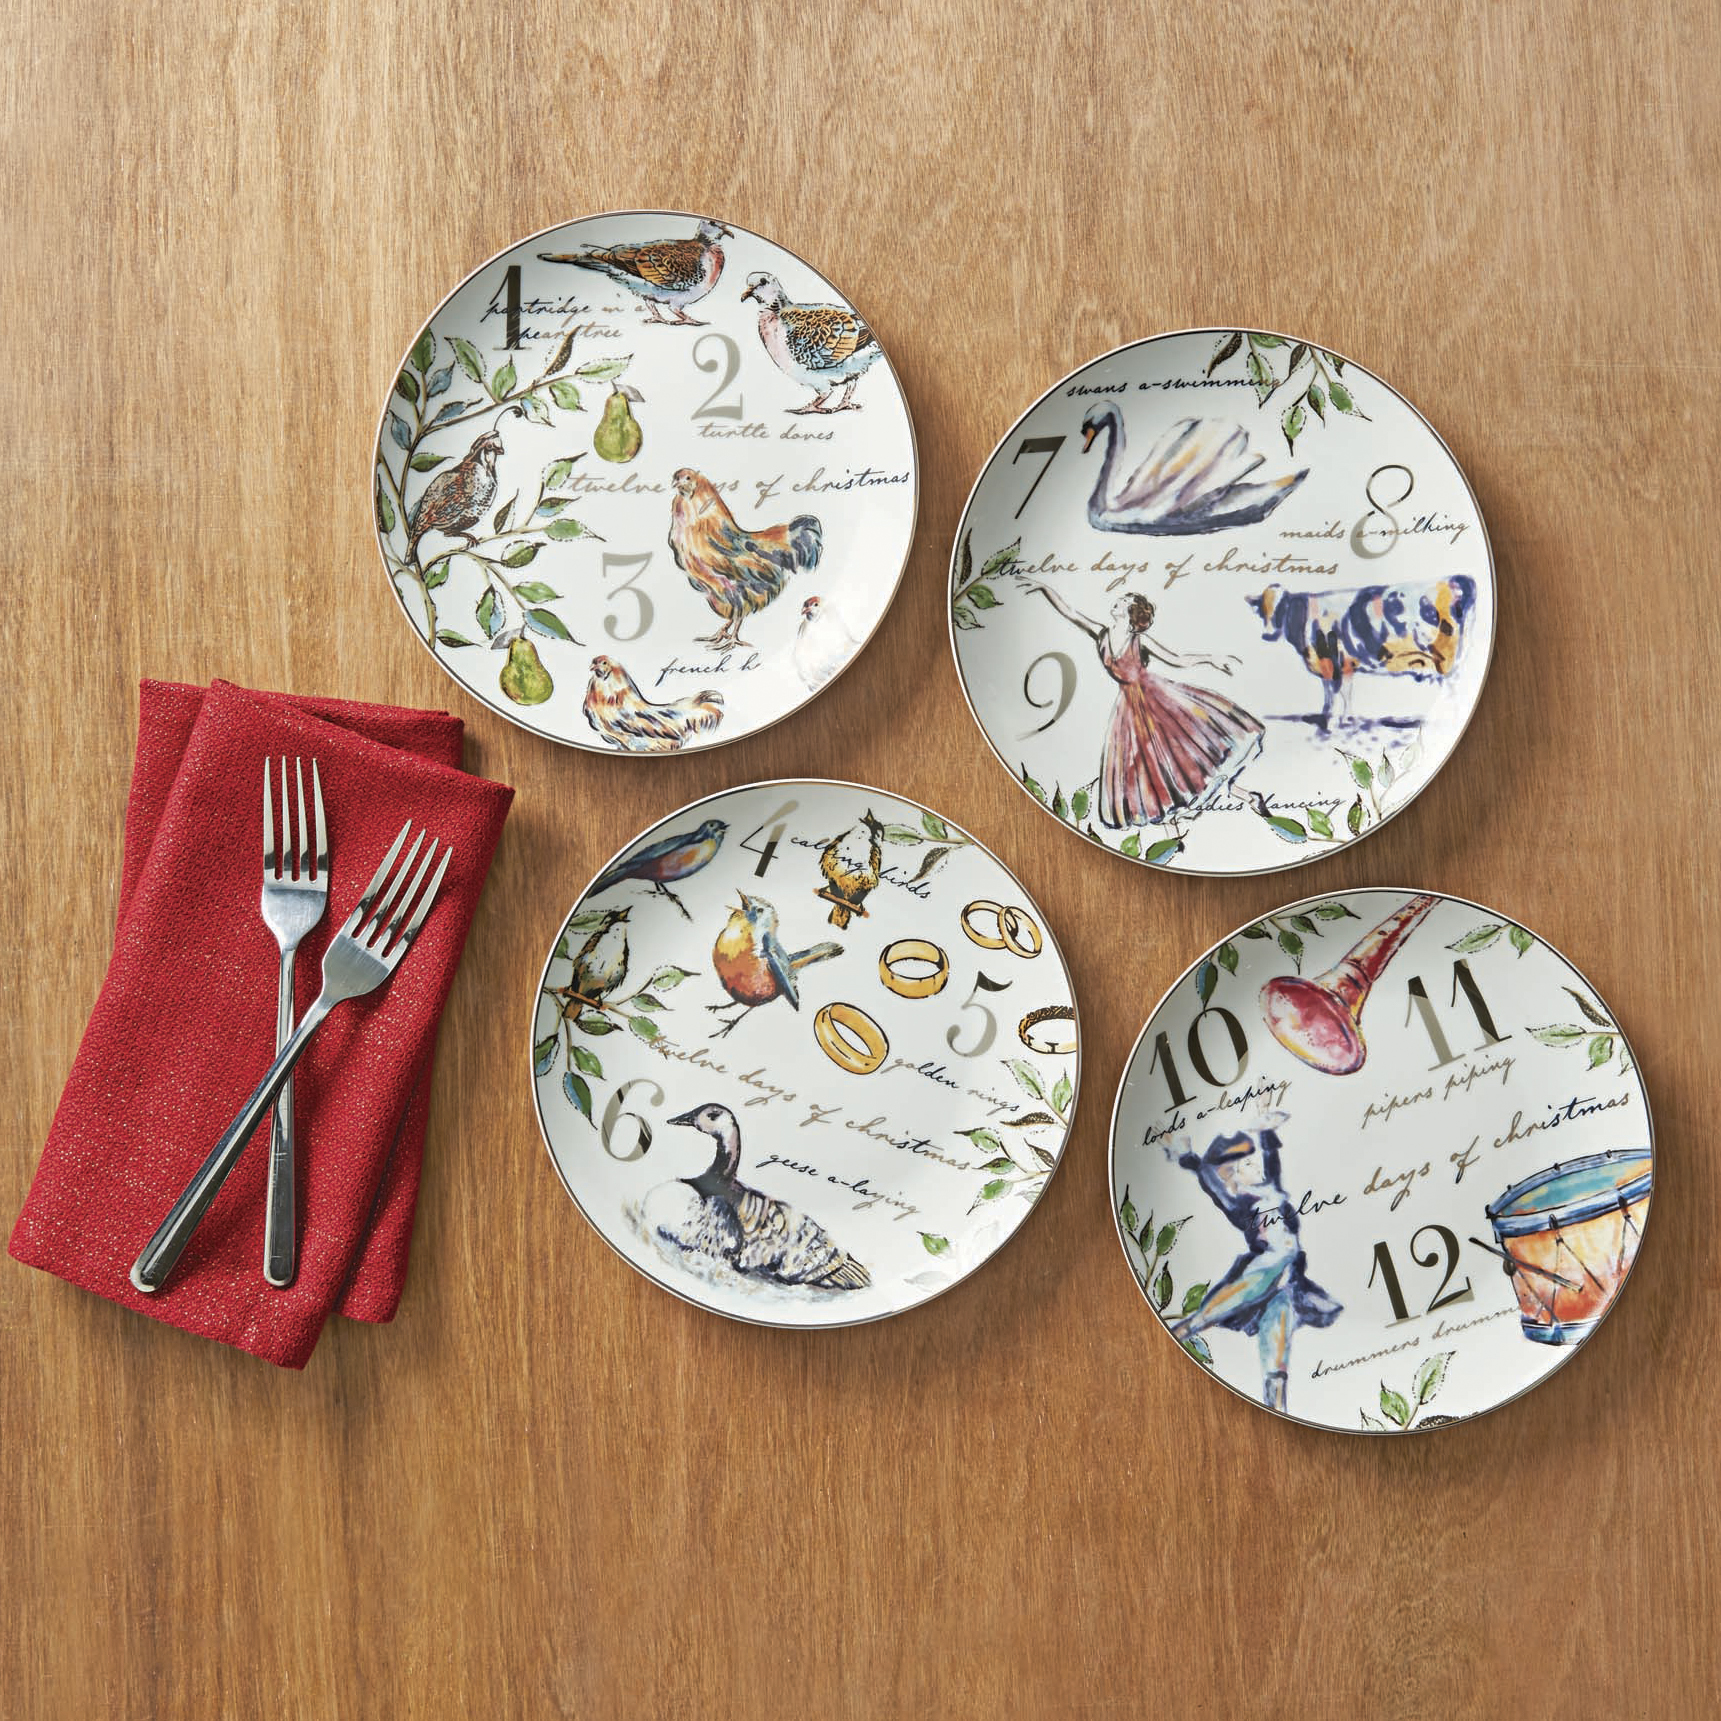 Better Homes and Gardens 12 Days Of Christmas Porcelain 12-piece Dinnerware Set & Better Homes and Gardens 12 Days Of Christmas Porcelain 12-piece ...